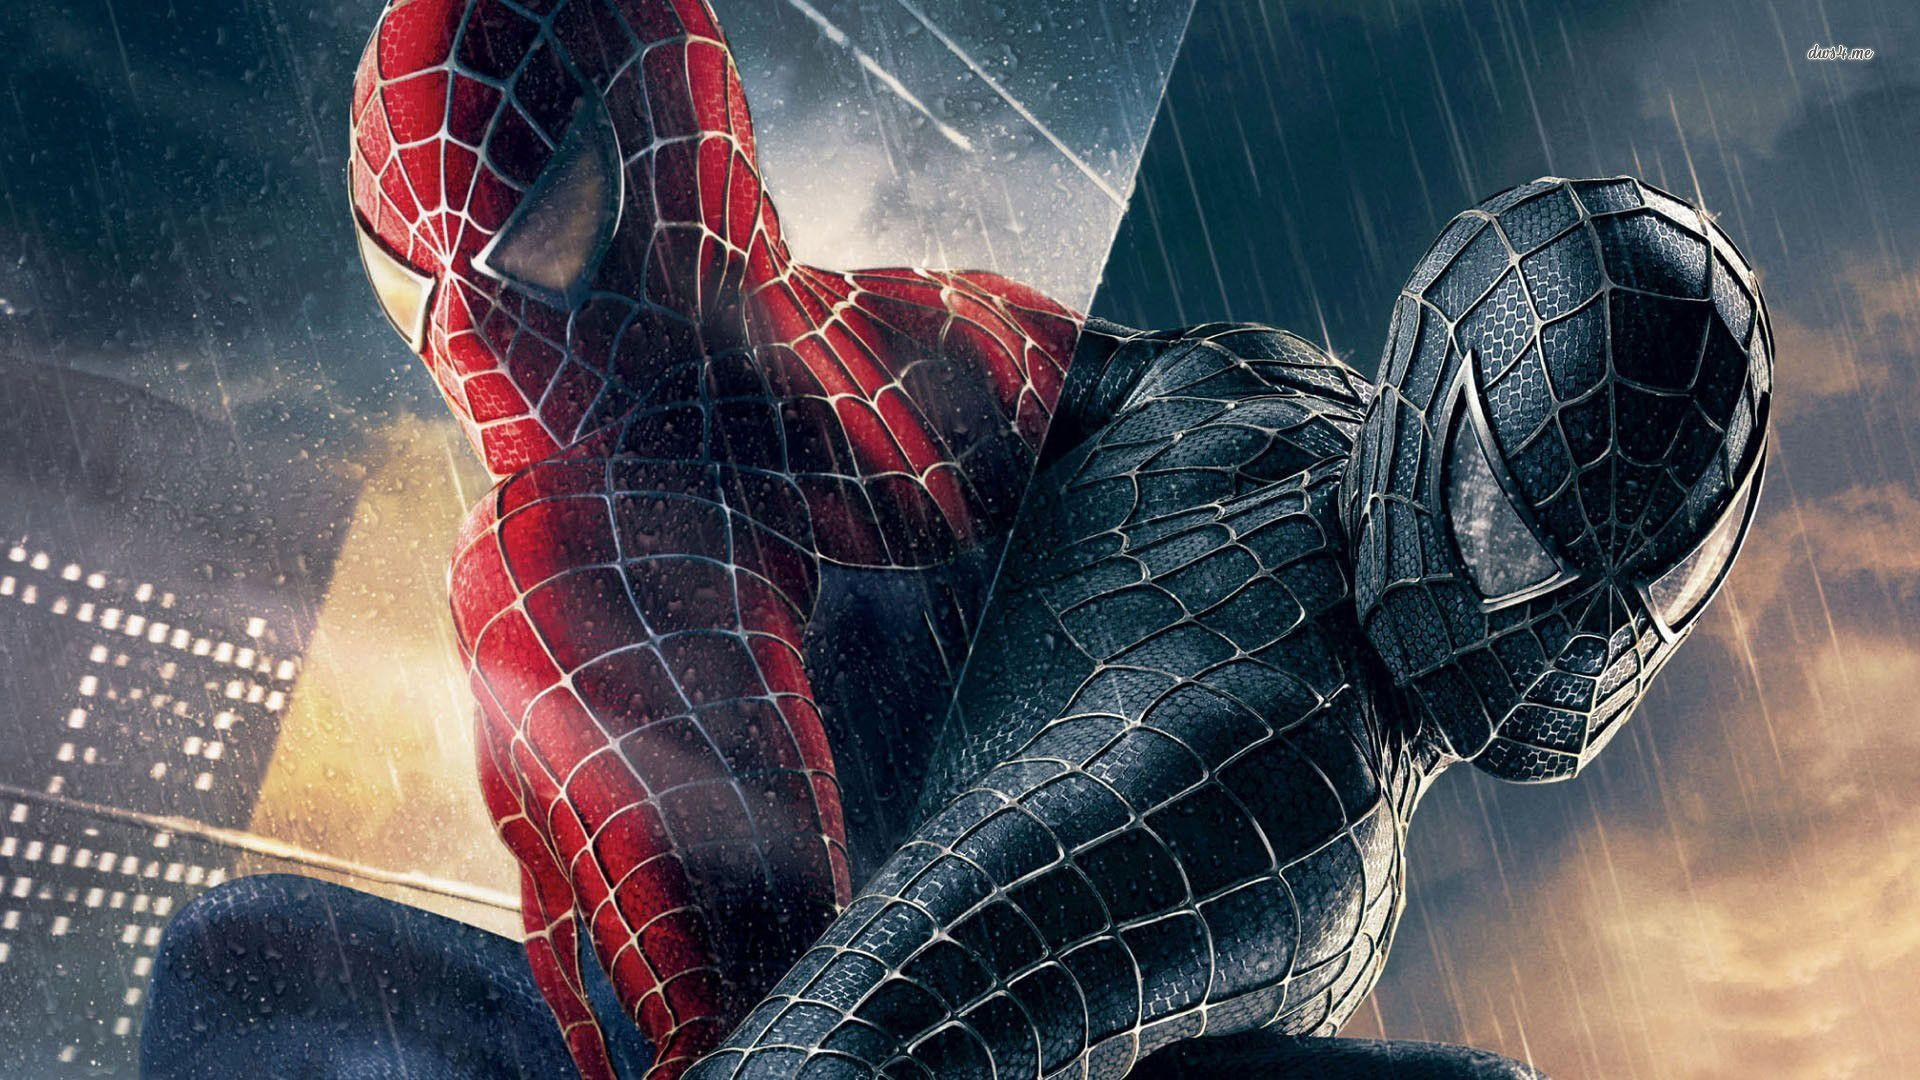 Spiderman 3 Wallpapers Collection